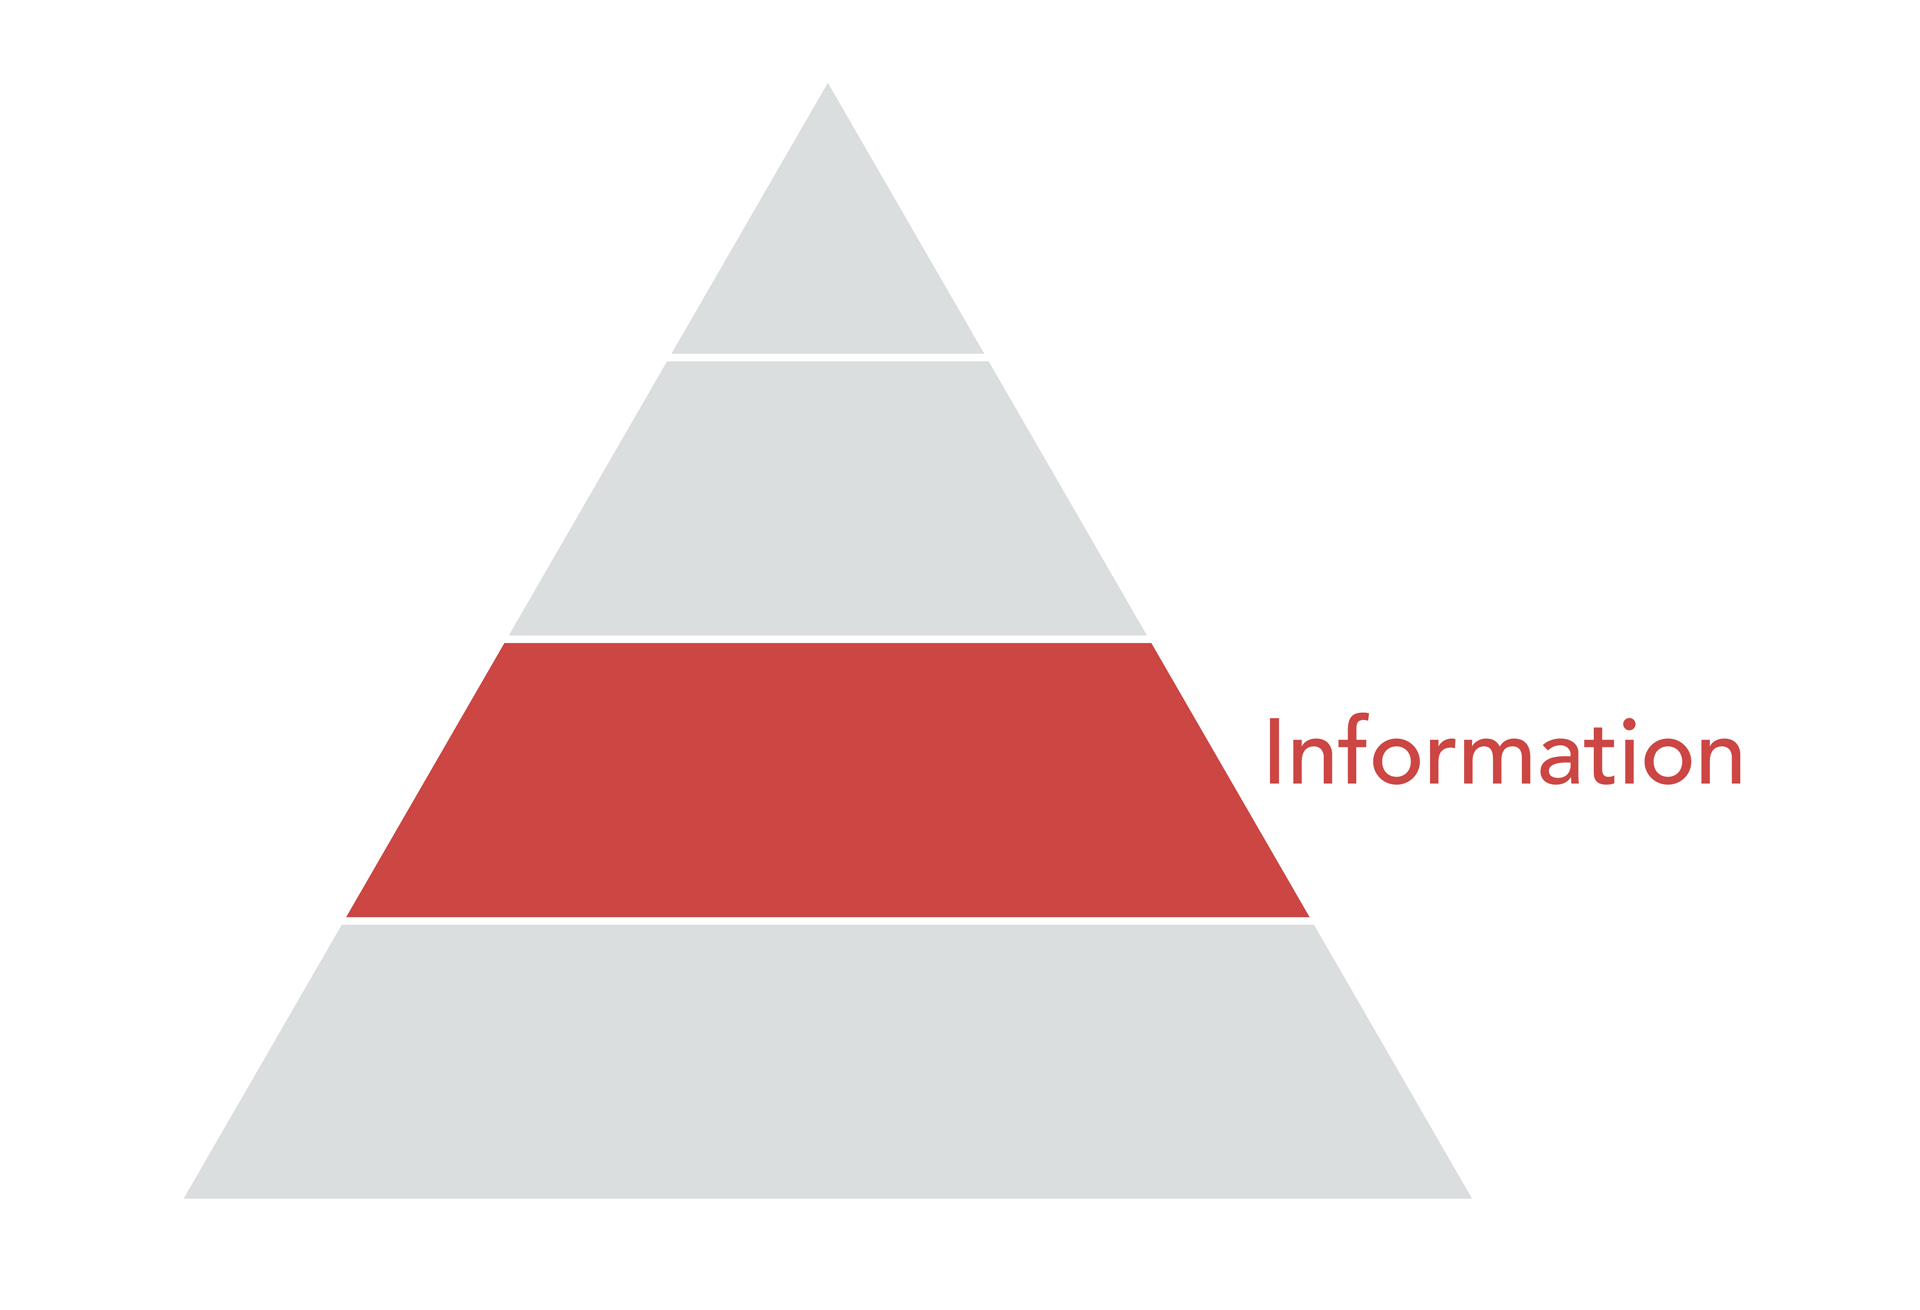 Data Pyramid, information layer.